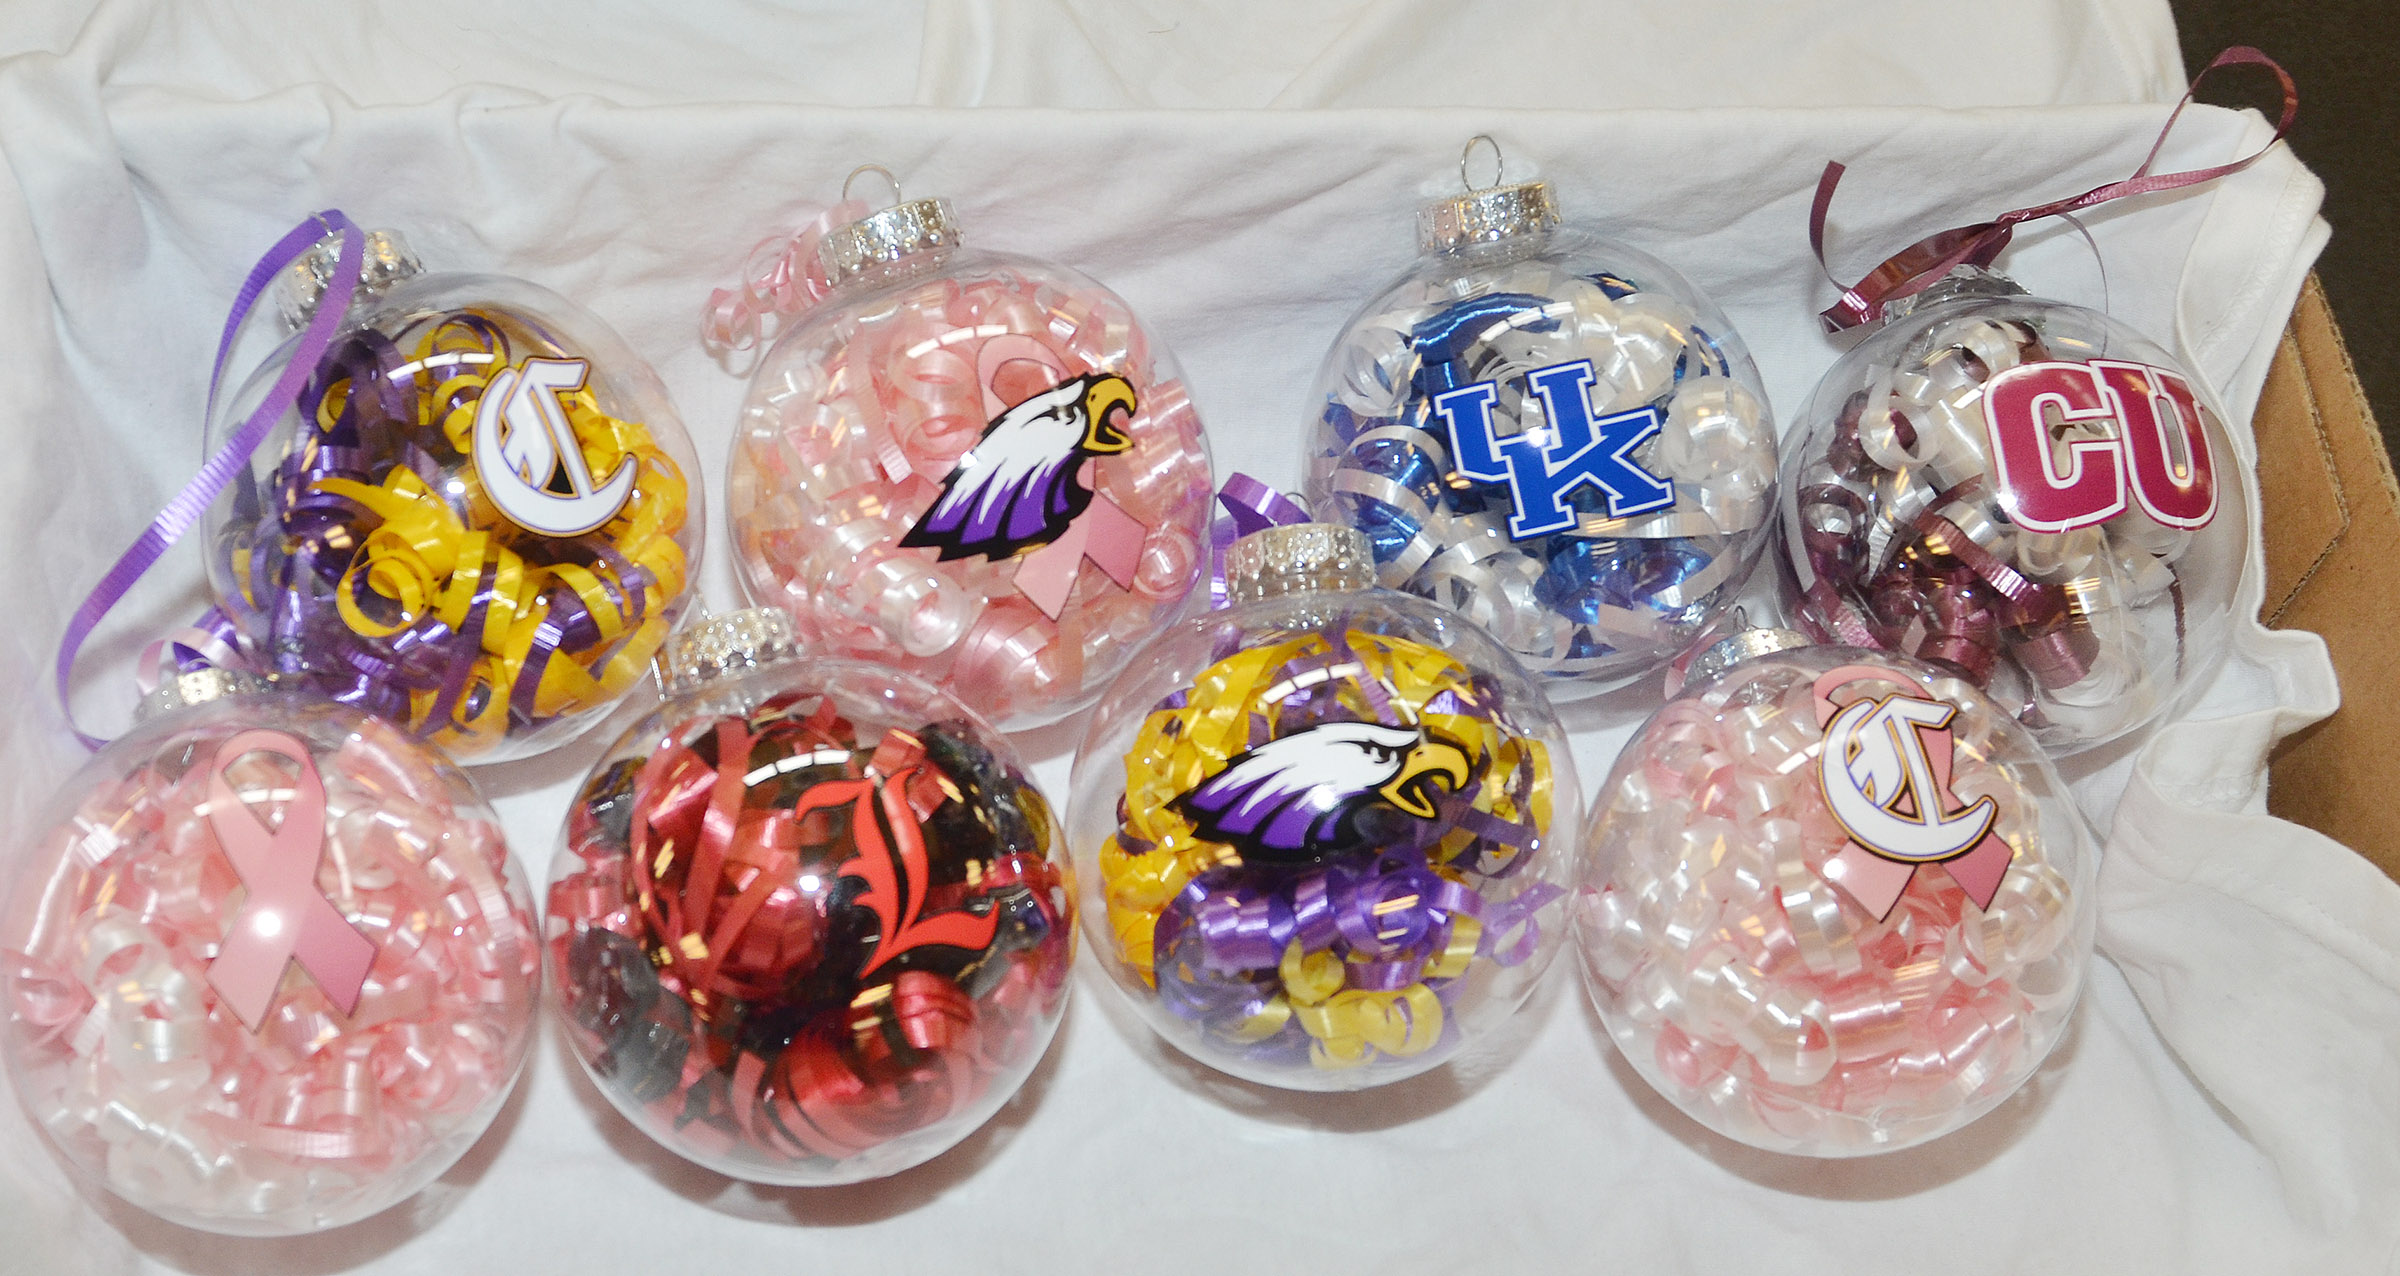 Campbellsville High School senior class members are selling these Christmas ornaments to raise money for project graduation. Ornaments are $6 each and can be purchased from any senior student or parent.